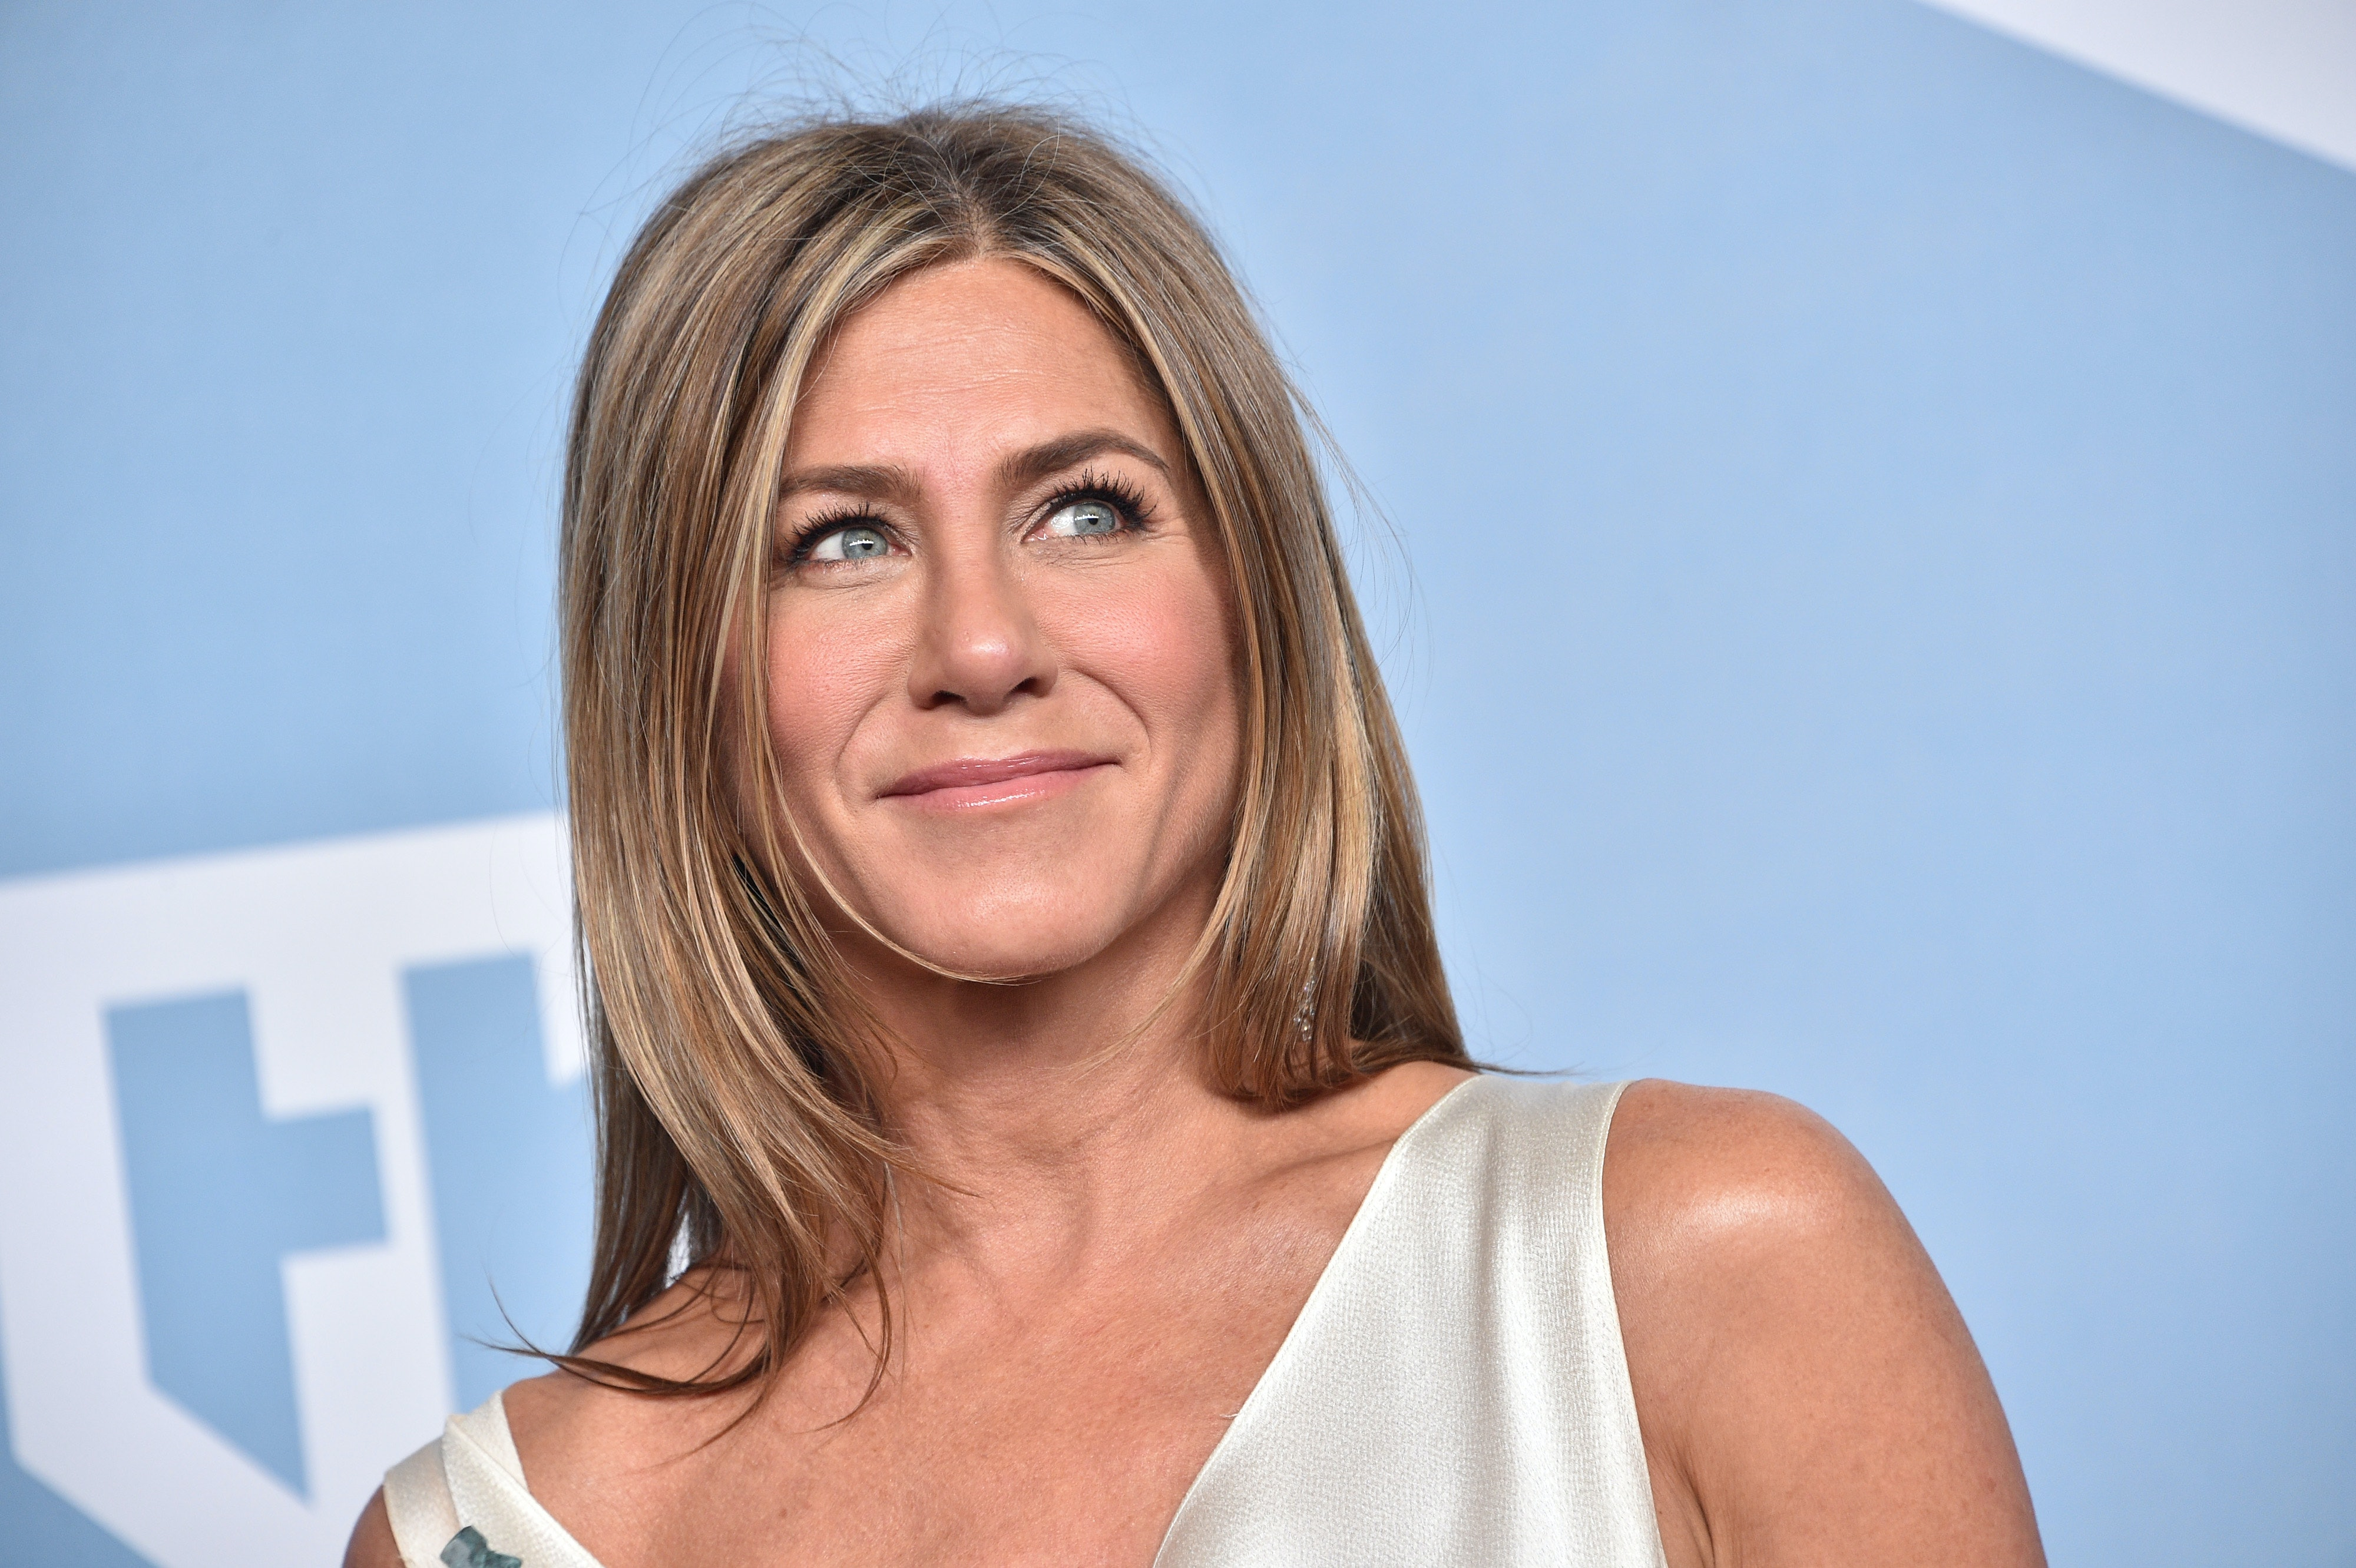 6 Iconic Jennifer Aniston Hairstyles From The Past That You Can Still Wear In 2020